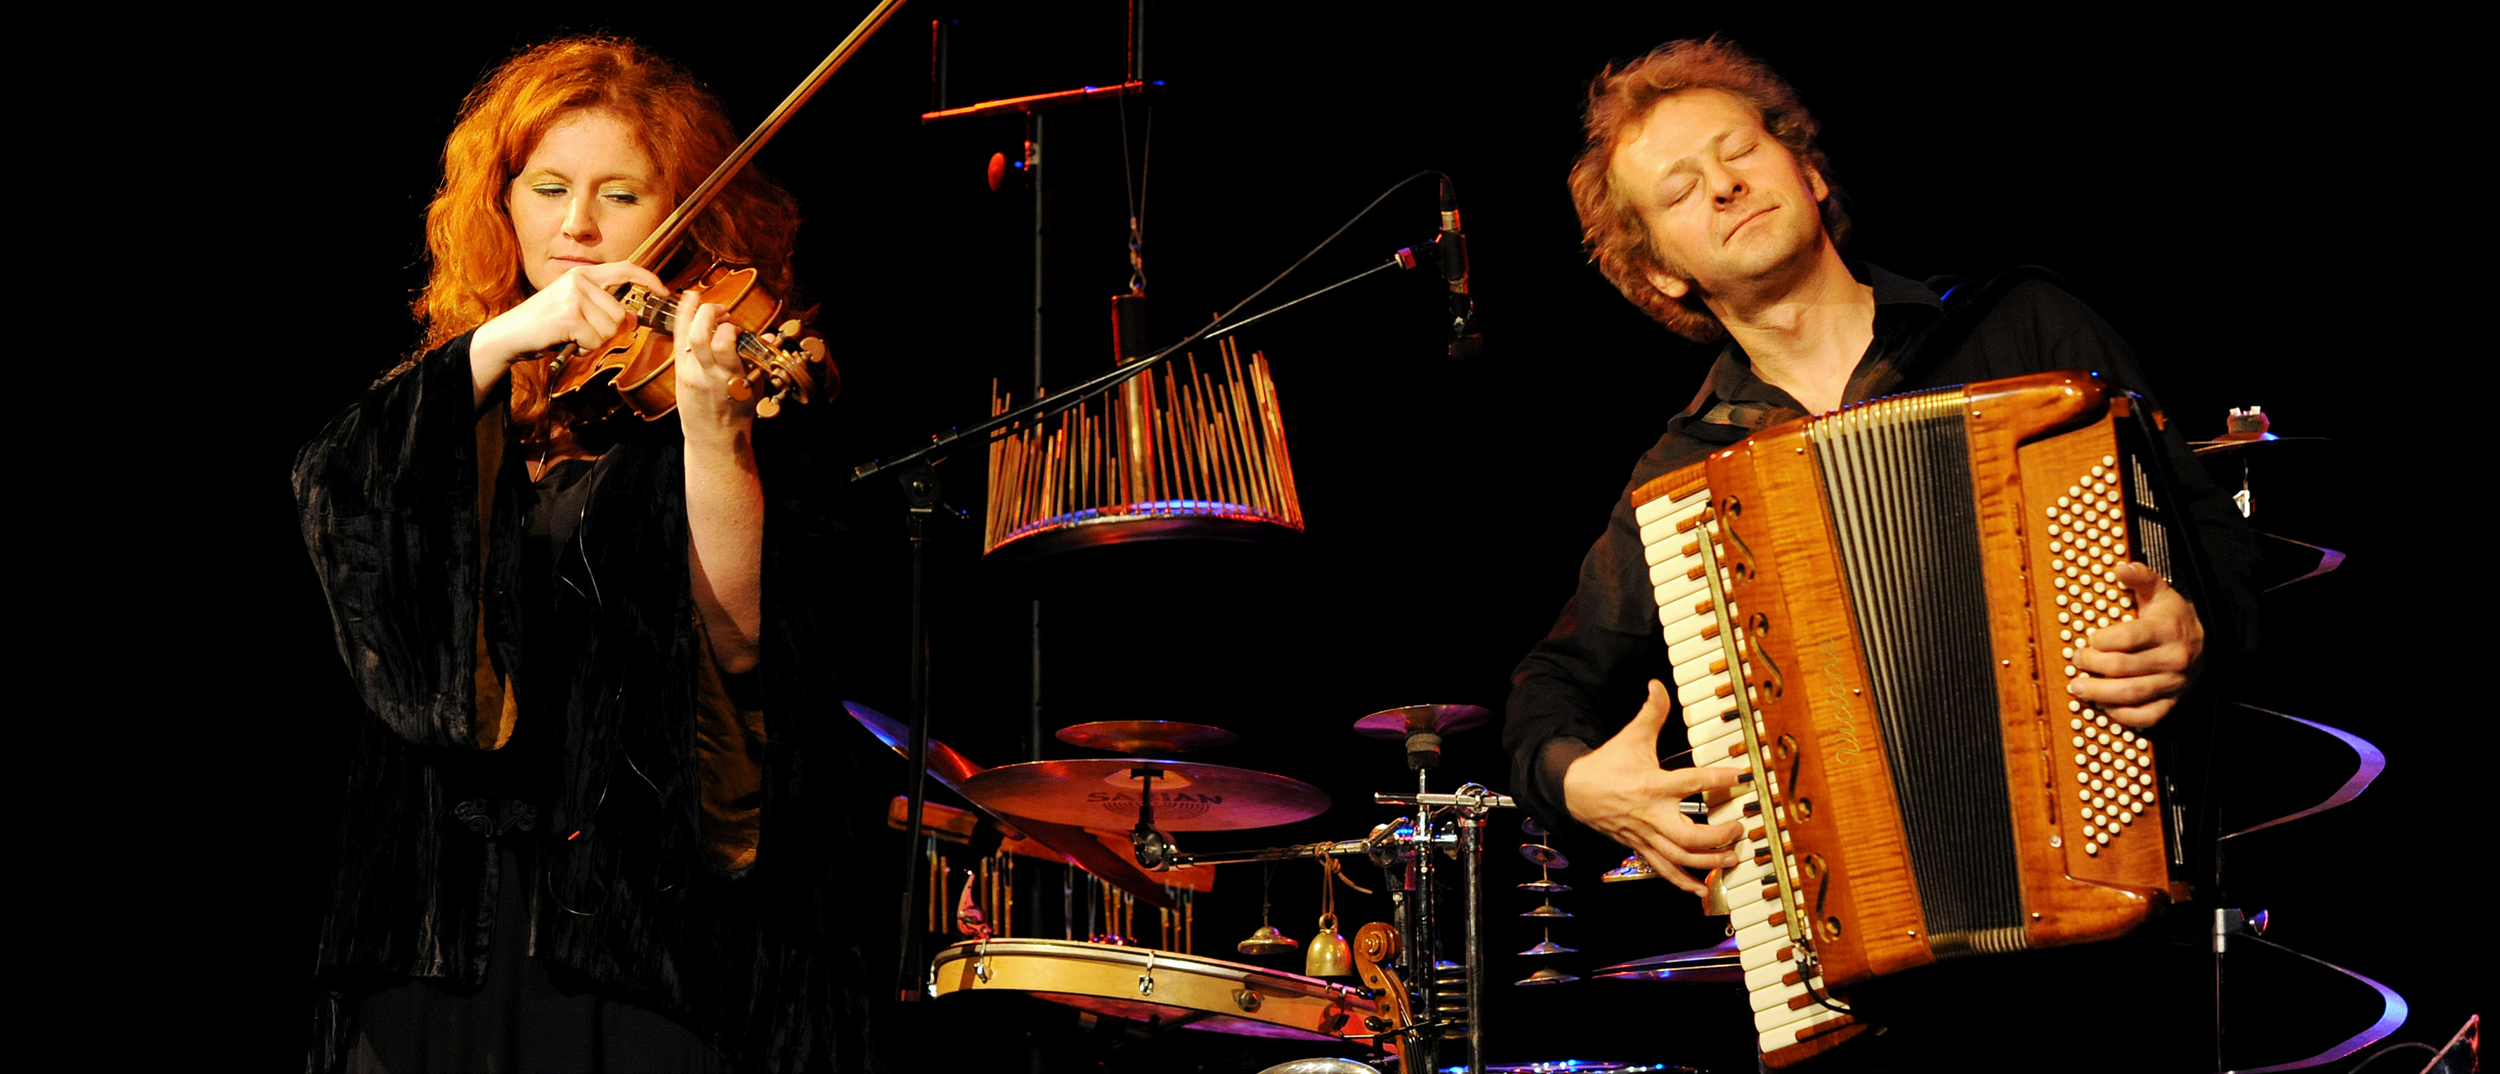 """""""Into the deep"""": Martina Eisenreich & Andreas Hinterseher (live). Photography by Yakup Zeyrek."""